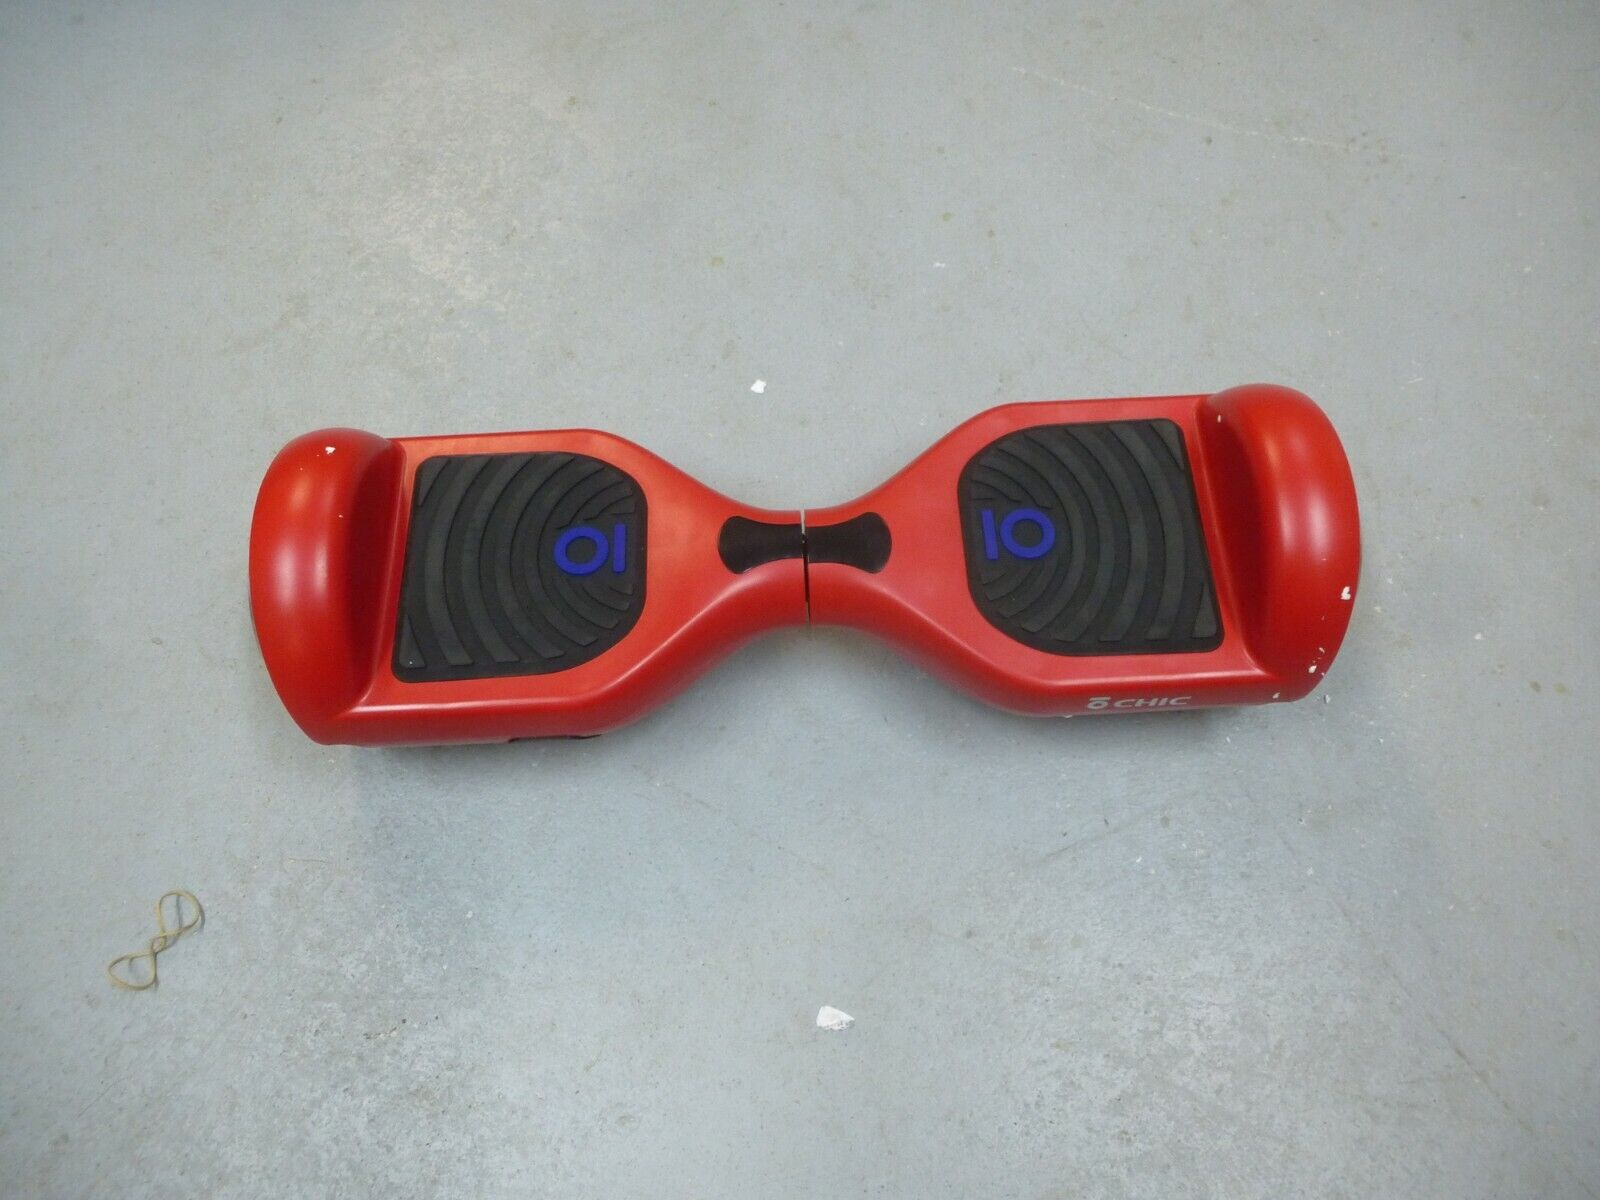 Hoverboard o chic model c1 rouge ( hors service )